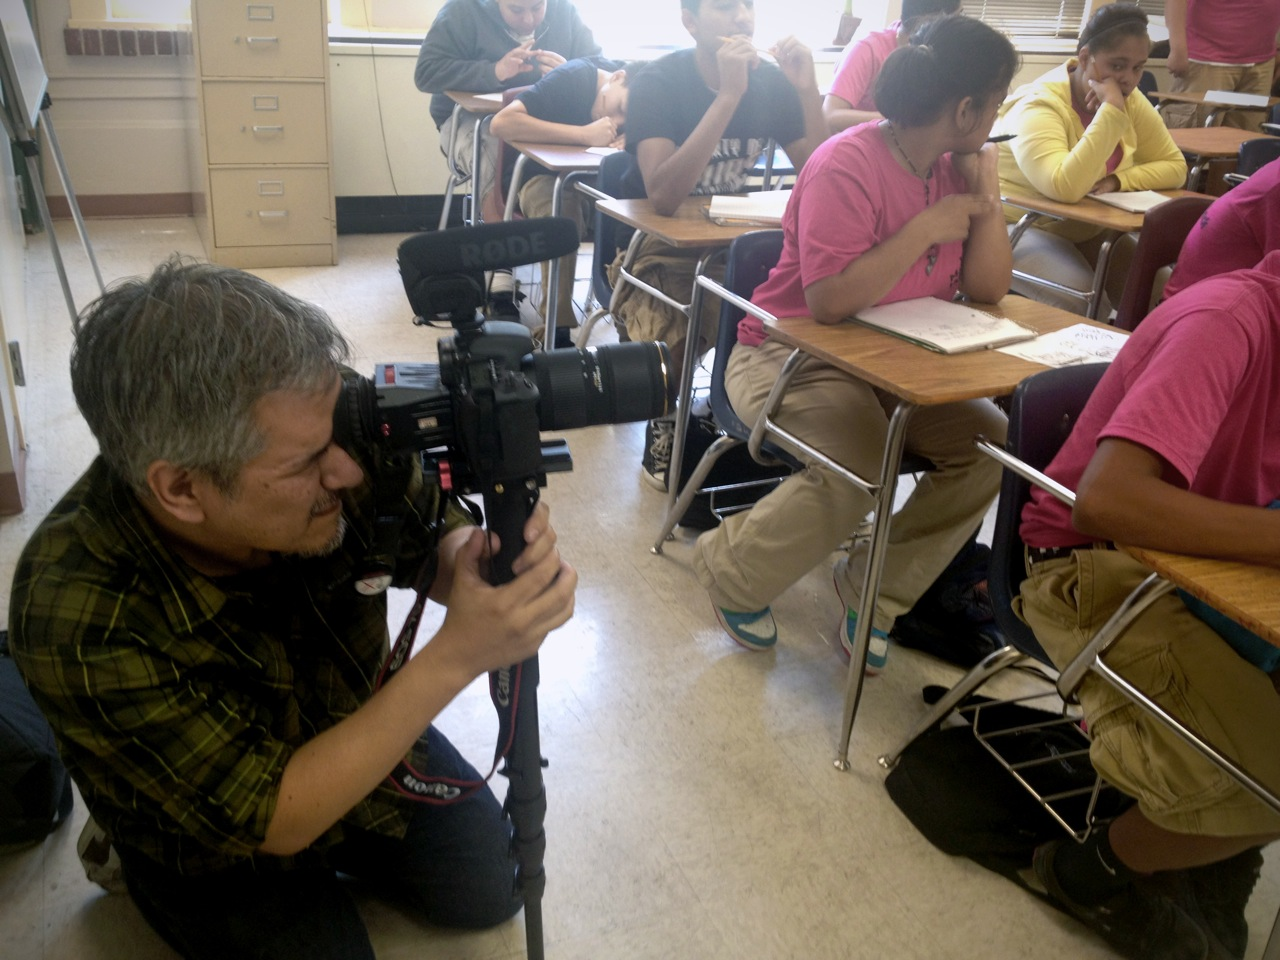 Jim Mendiola films students participating in the Middle School Partners Program at Mark Twain Middle School (SAISD). Courtesy photo.